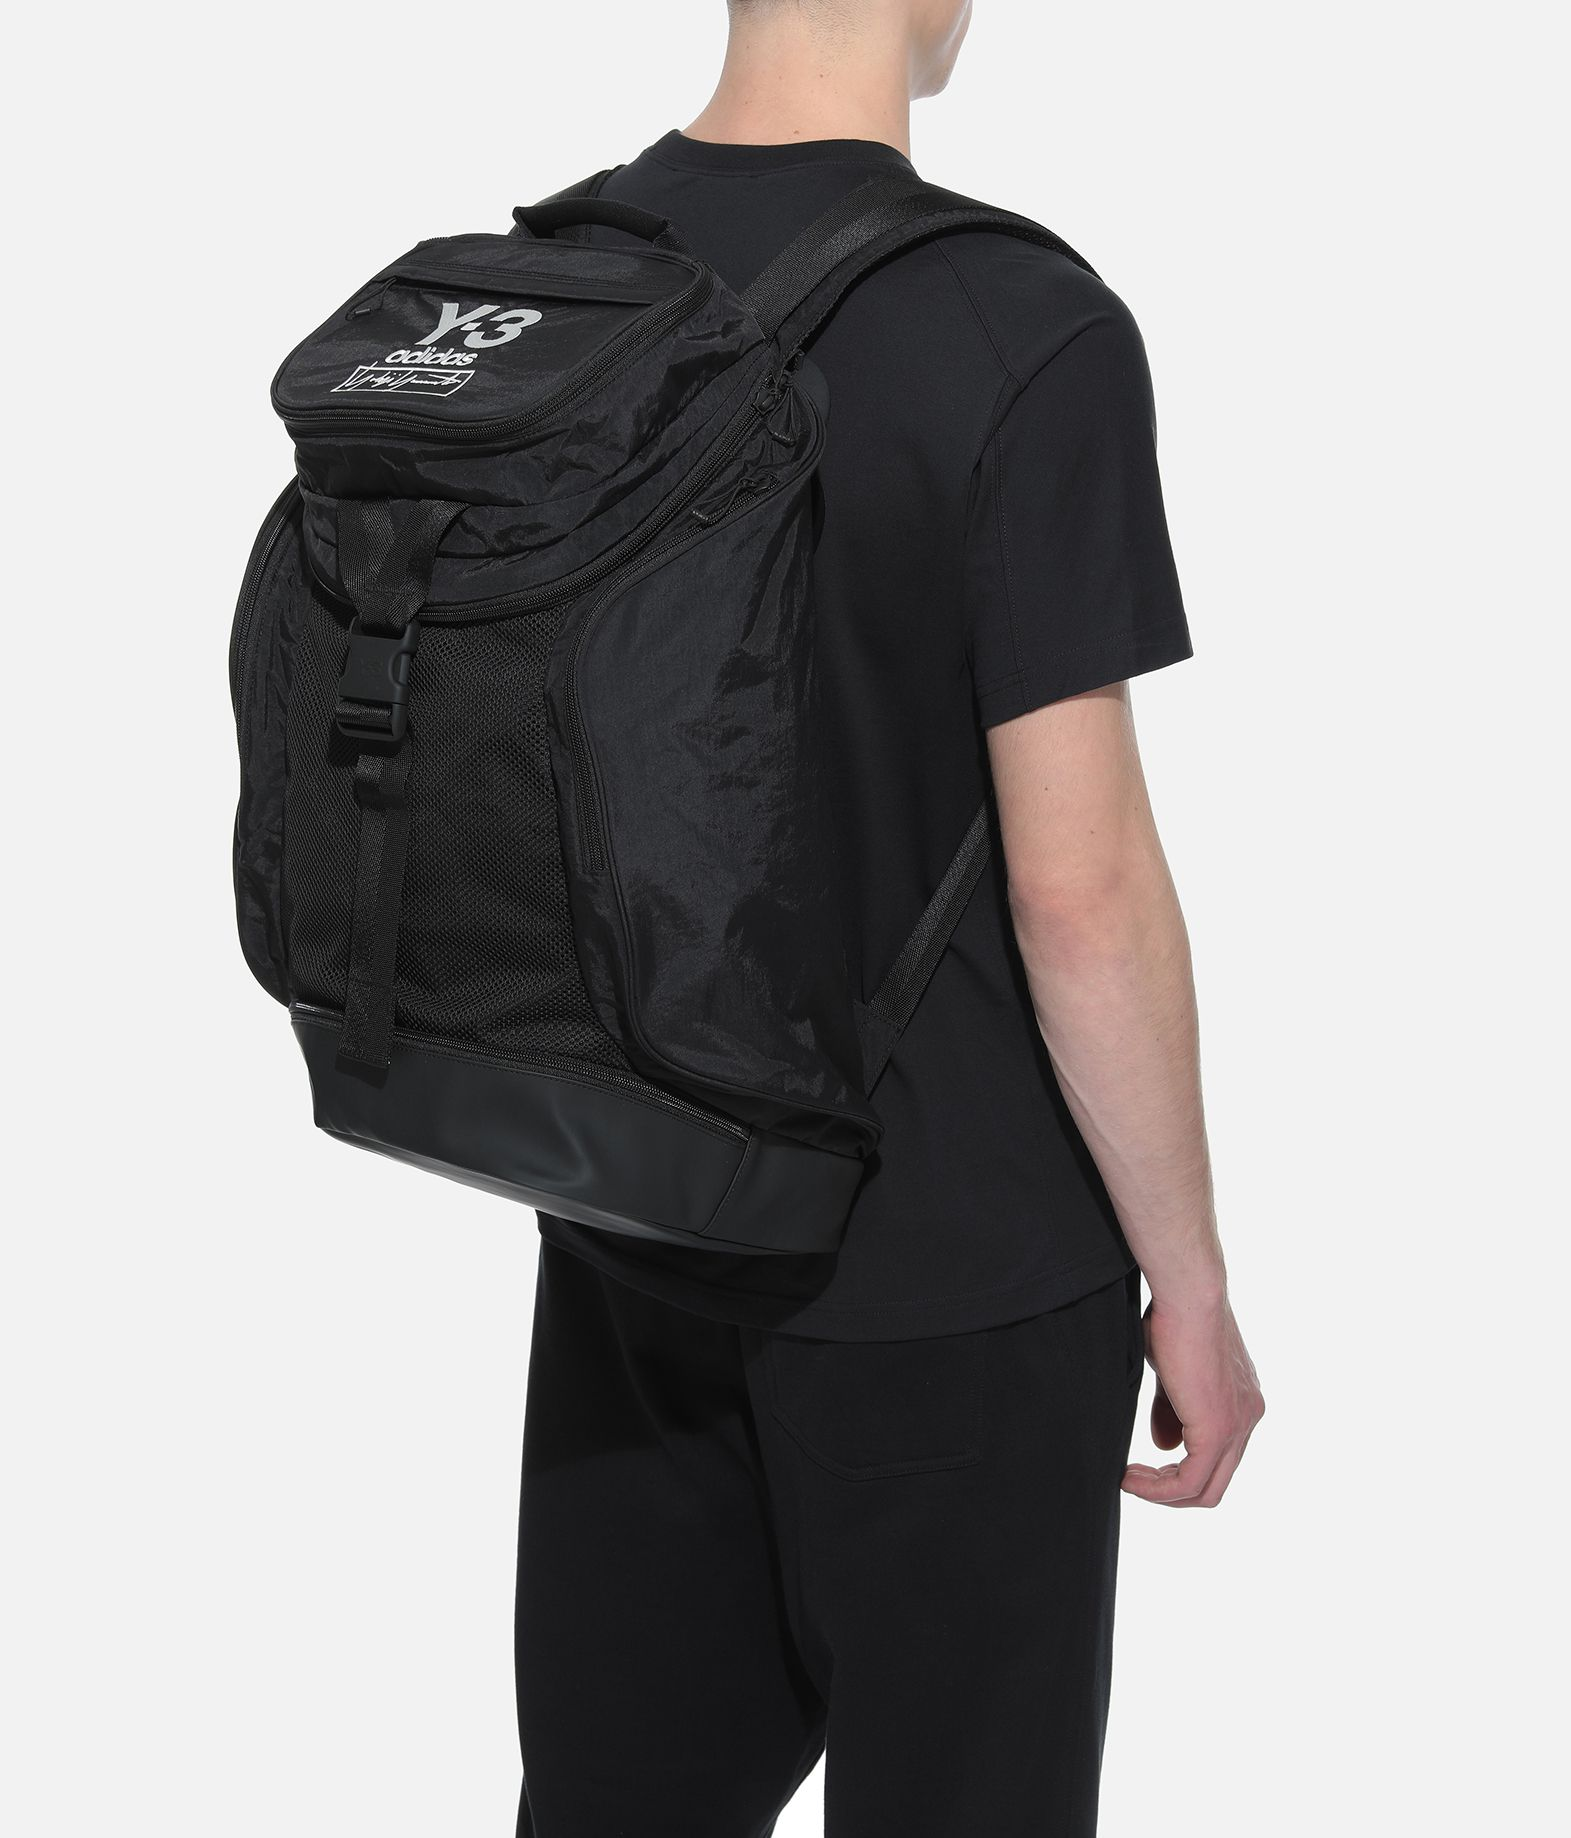 Y-3 Y-3 Travel Backpack リュックサック E r